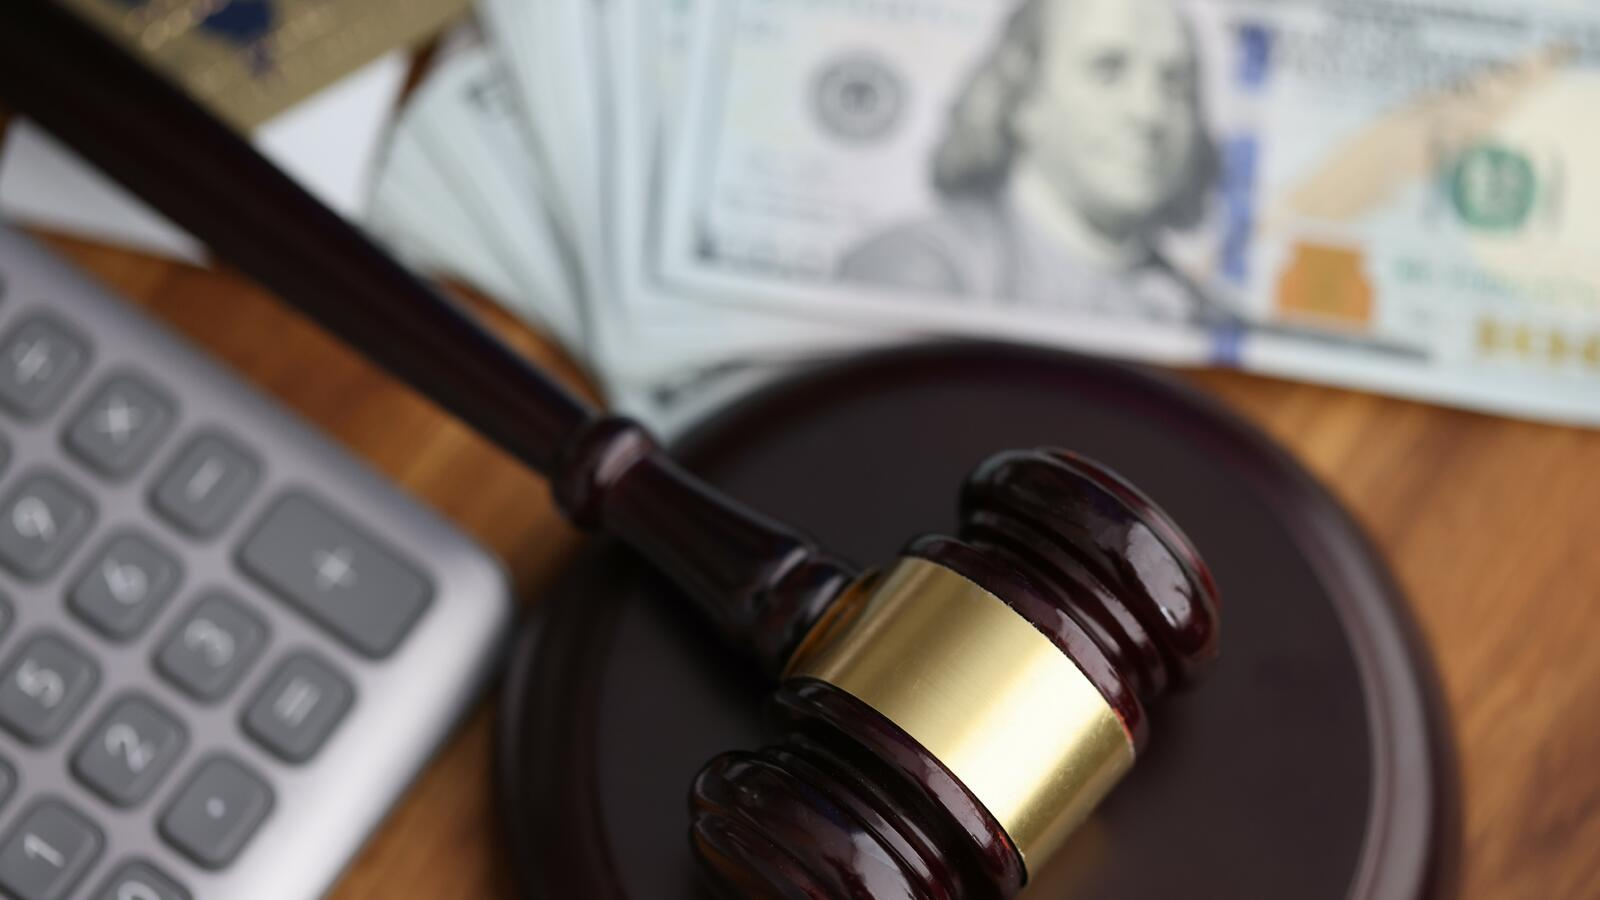 131 Federal Judges Heard Cases In Which They Had A Financial Interest